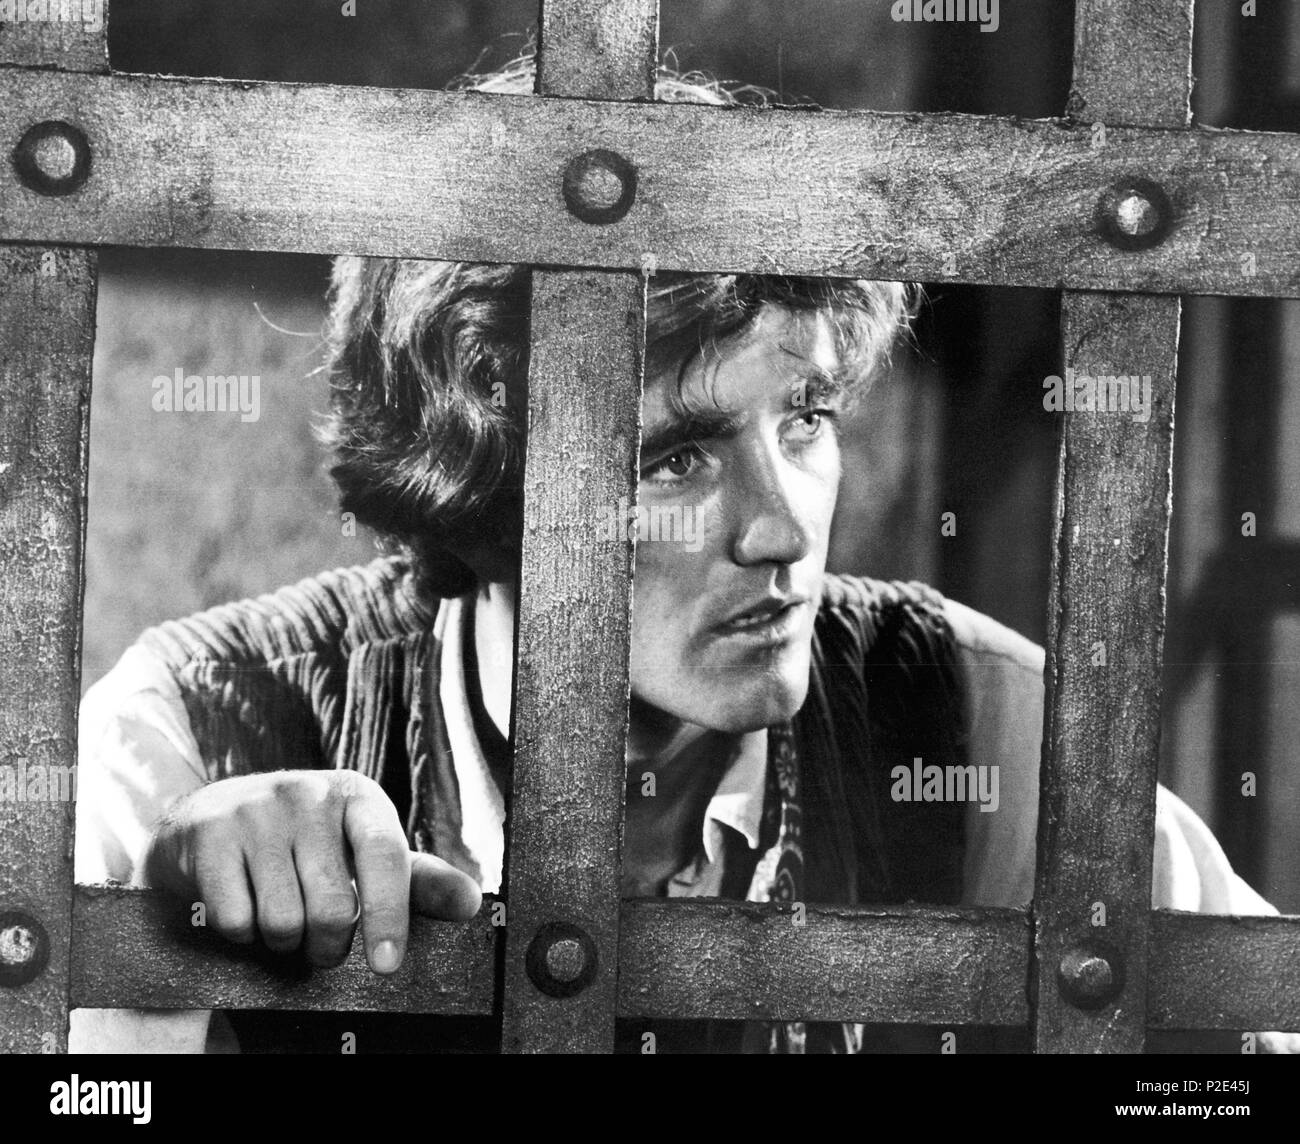 Original Film Title: YOUNG BILLY YOUNG.  English Title: YOUNG BILLY YOUNG.  Film Director: BURT KENNEDY.  Year: 1969. Credit: UNITED ARTISTS / Album - Stock Image